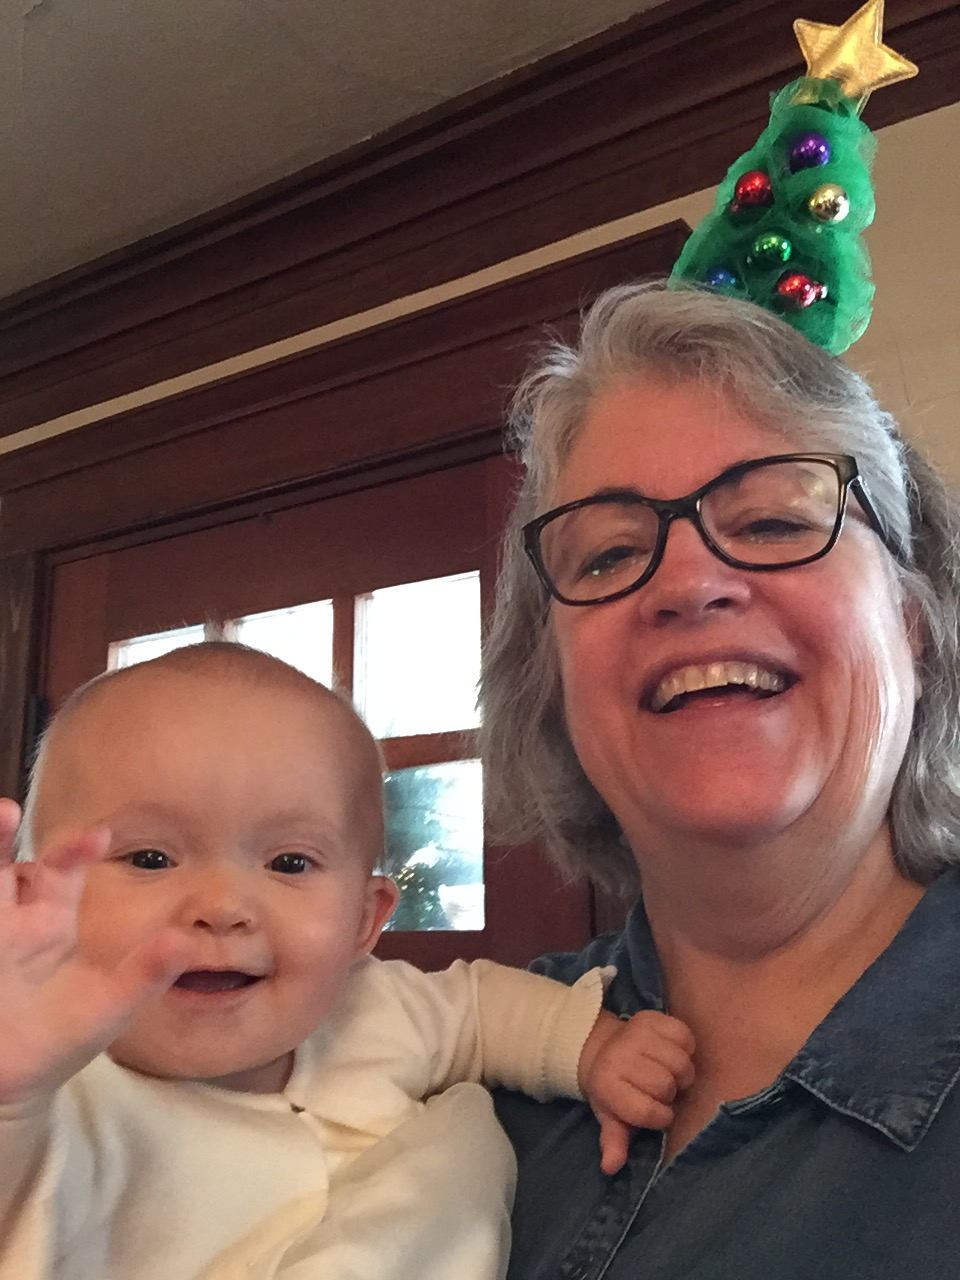 Merry Christmas from Great Niece Abby & I - Dec. 2017